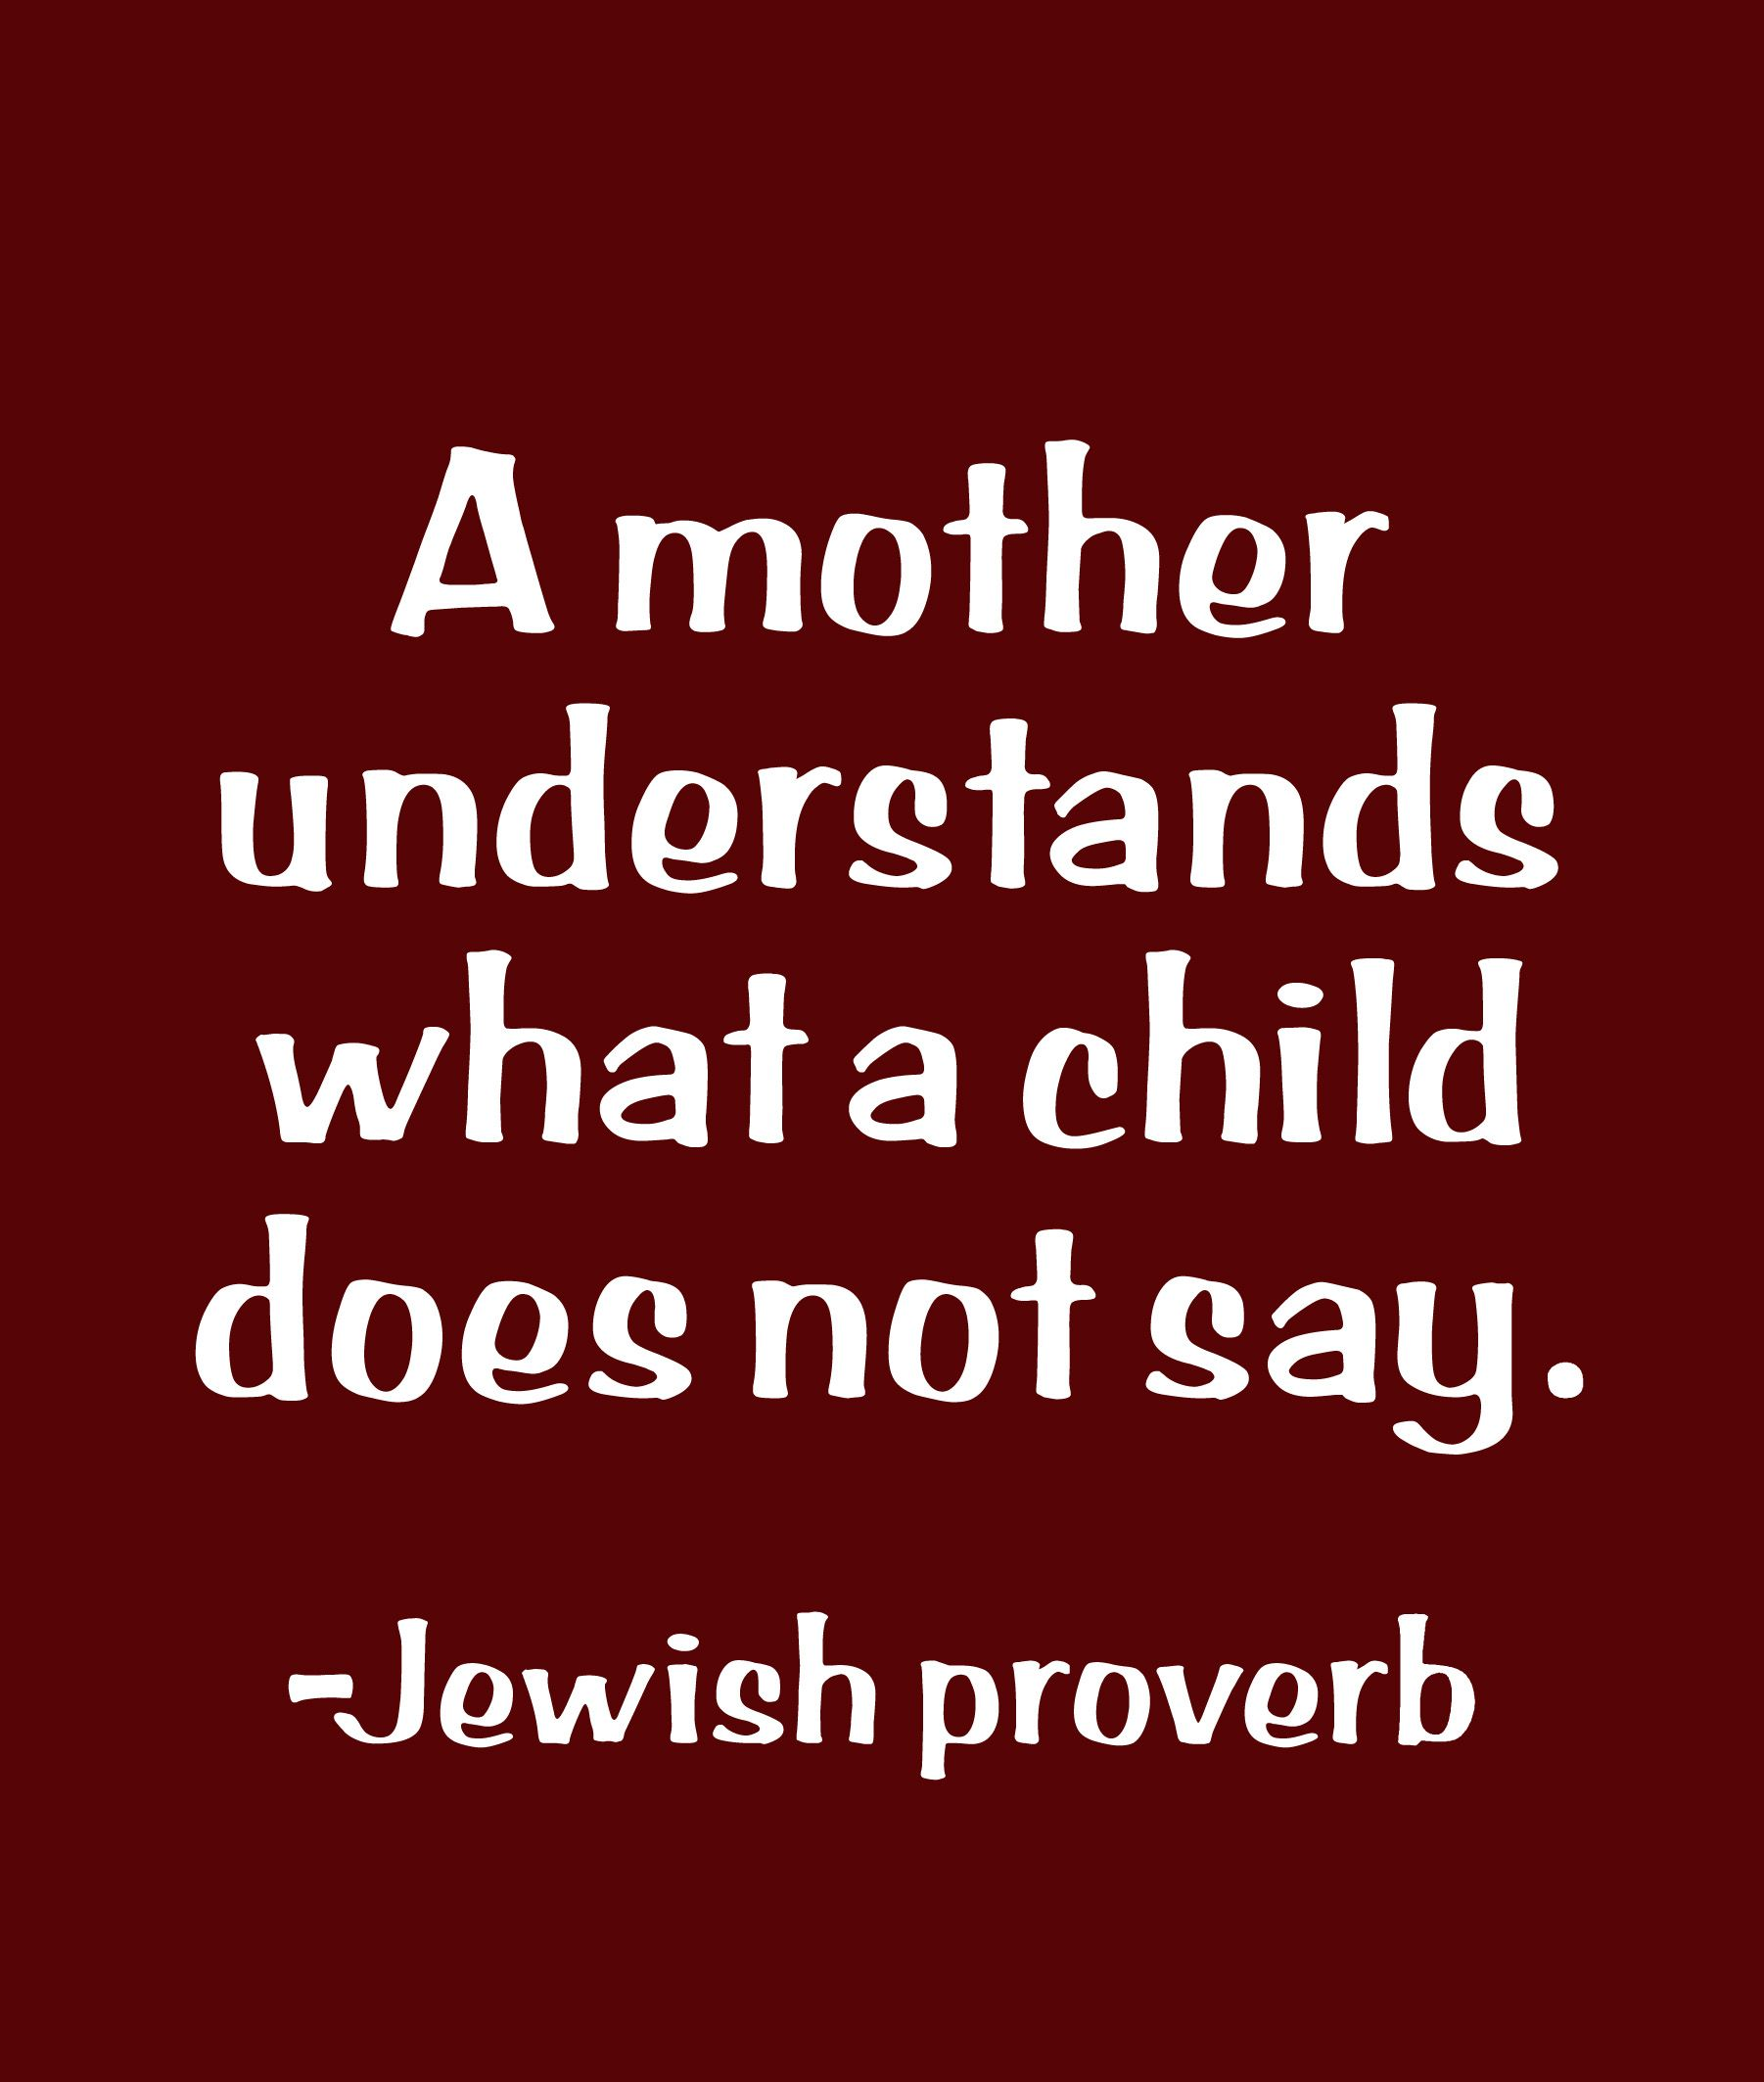 34wonderfully wise Jewish sayings